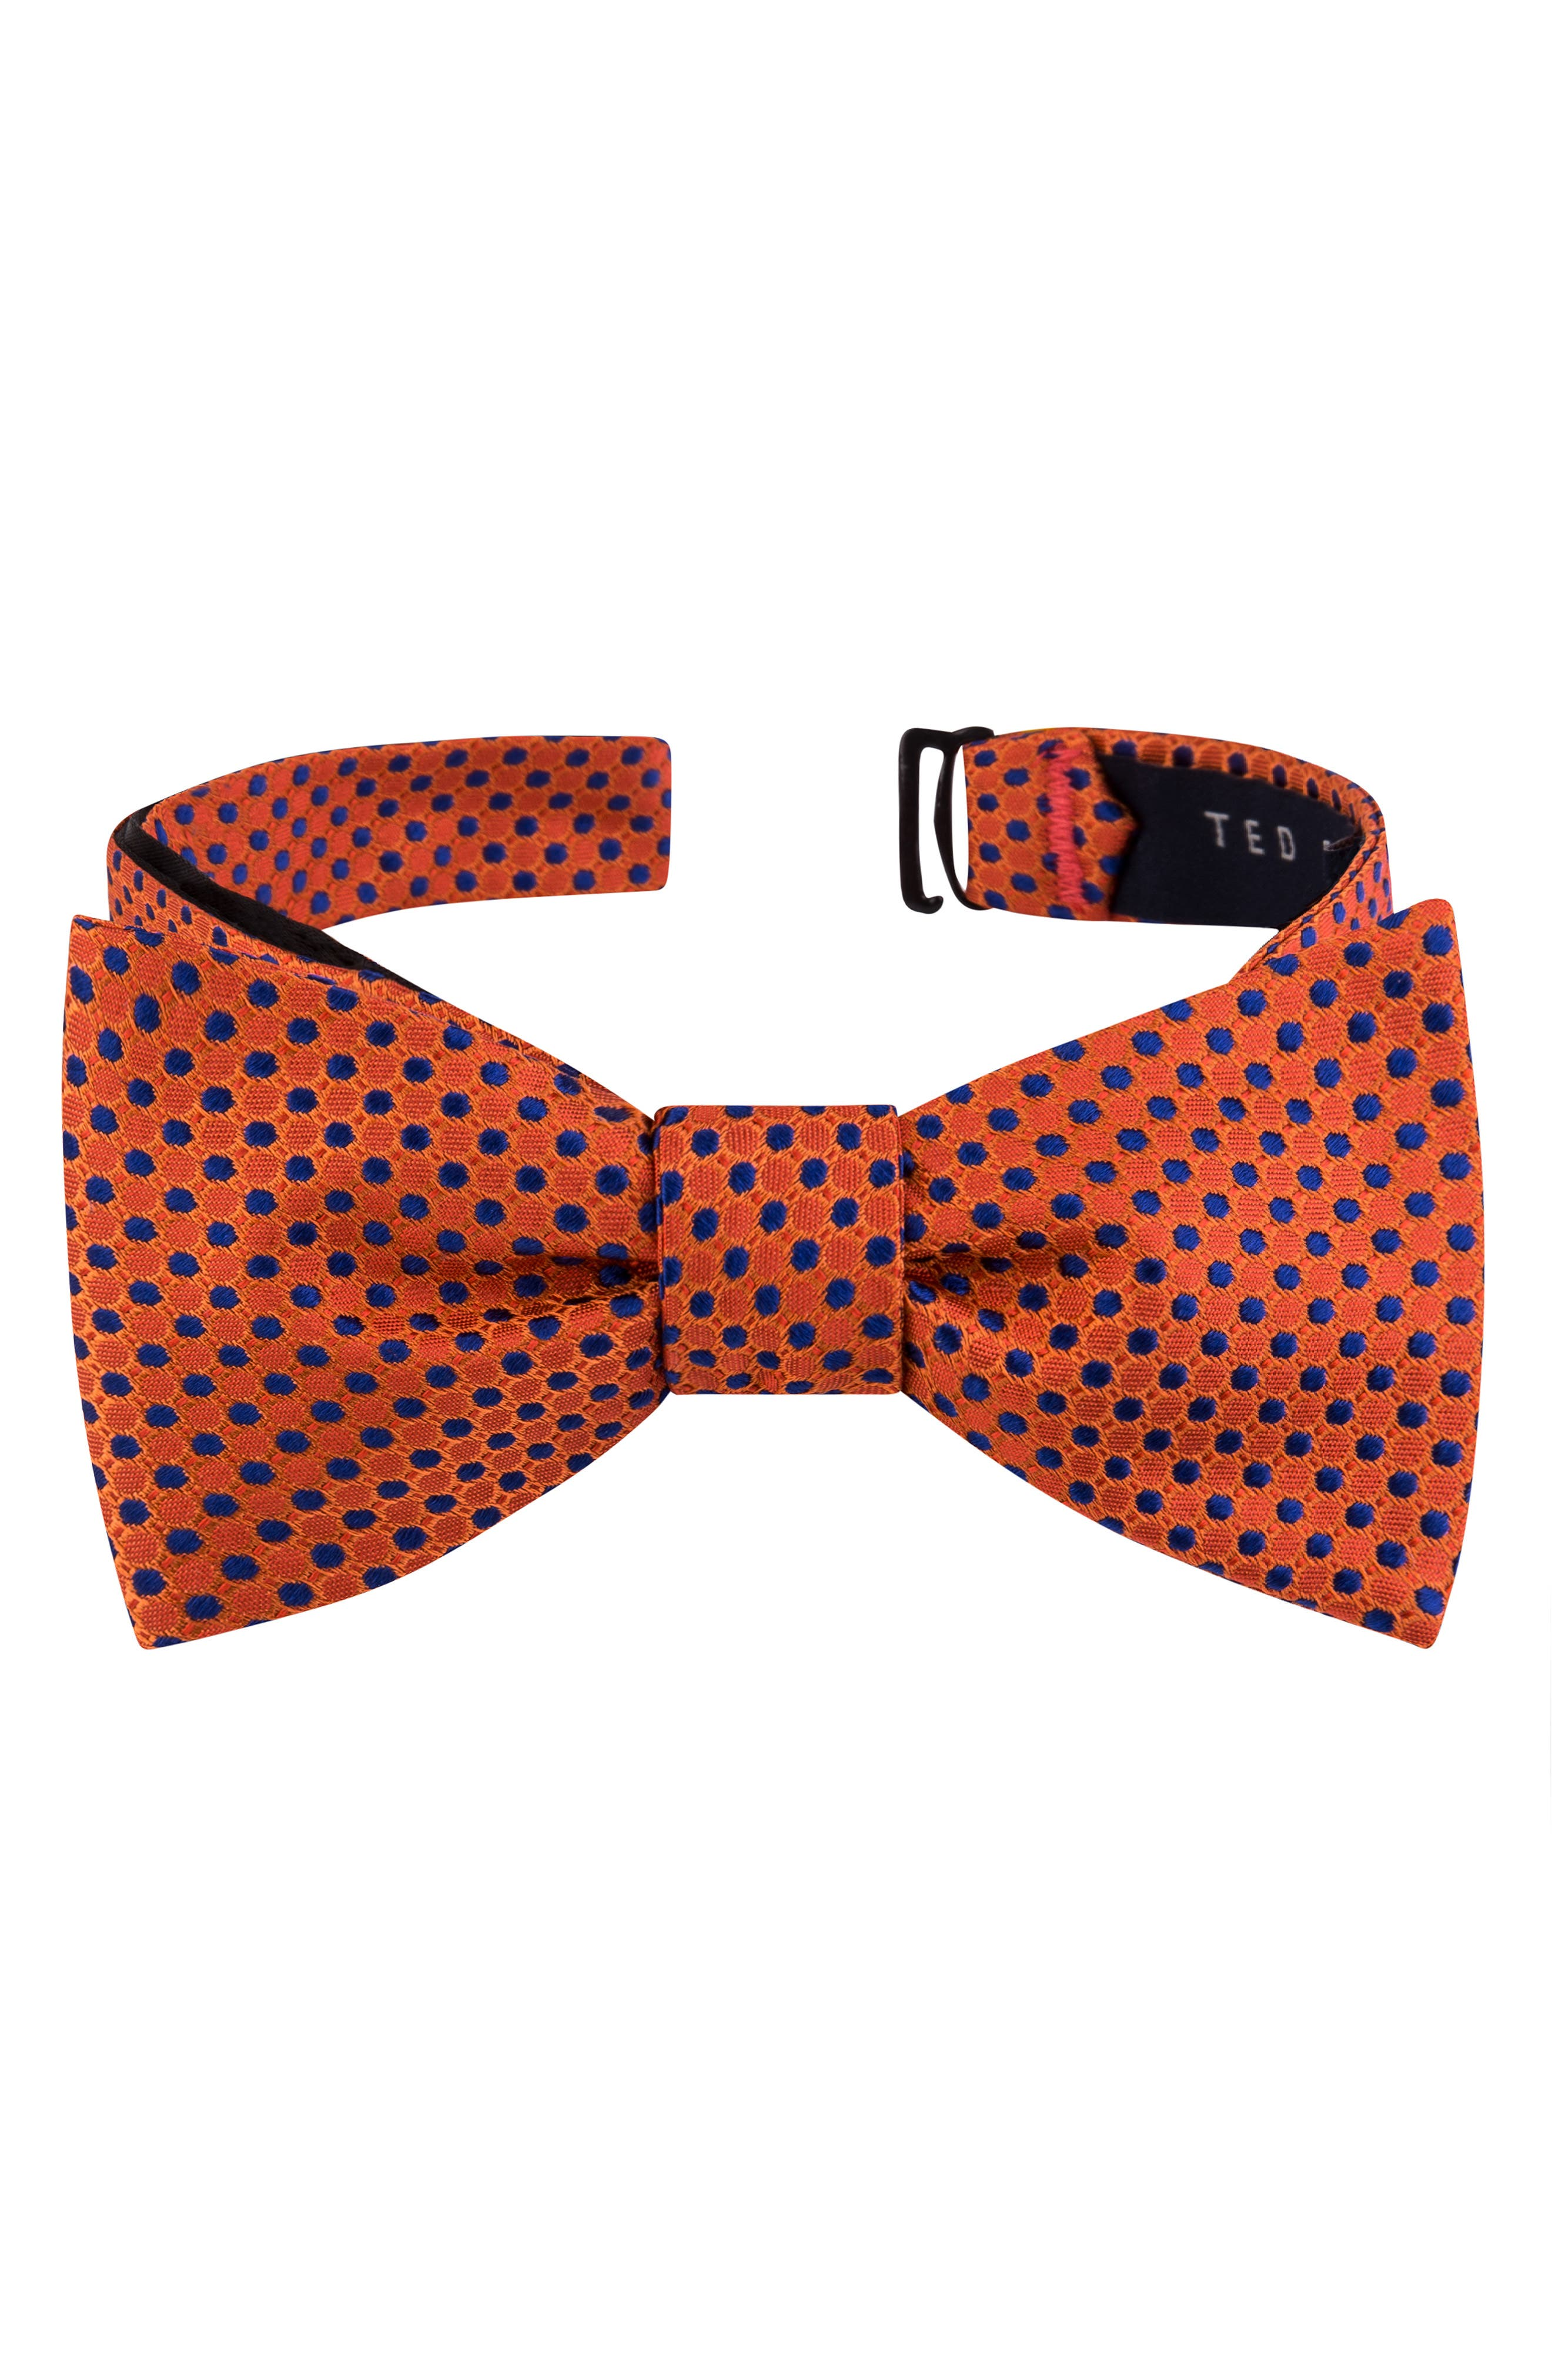 Men's 1920s Style Ties, Neck Ties & Bowties Mens Ted Baker London Dot Silk Bow Tie Size One Size - Orange $59.50 AT vintagedancer.com